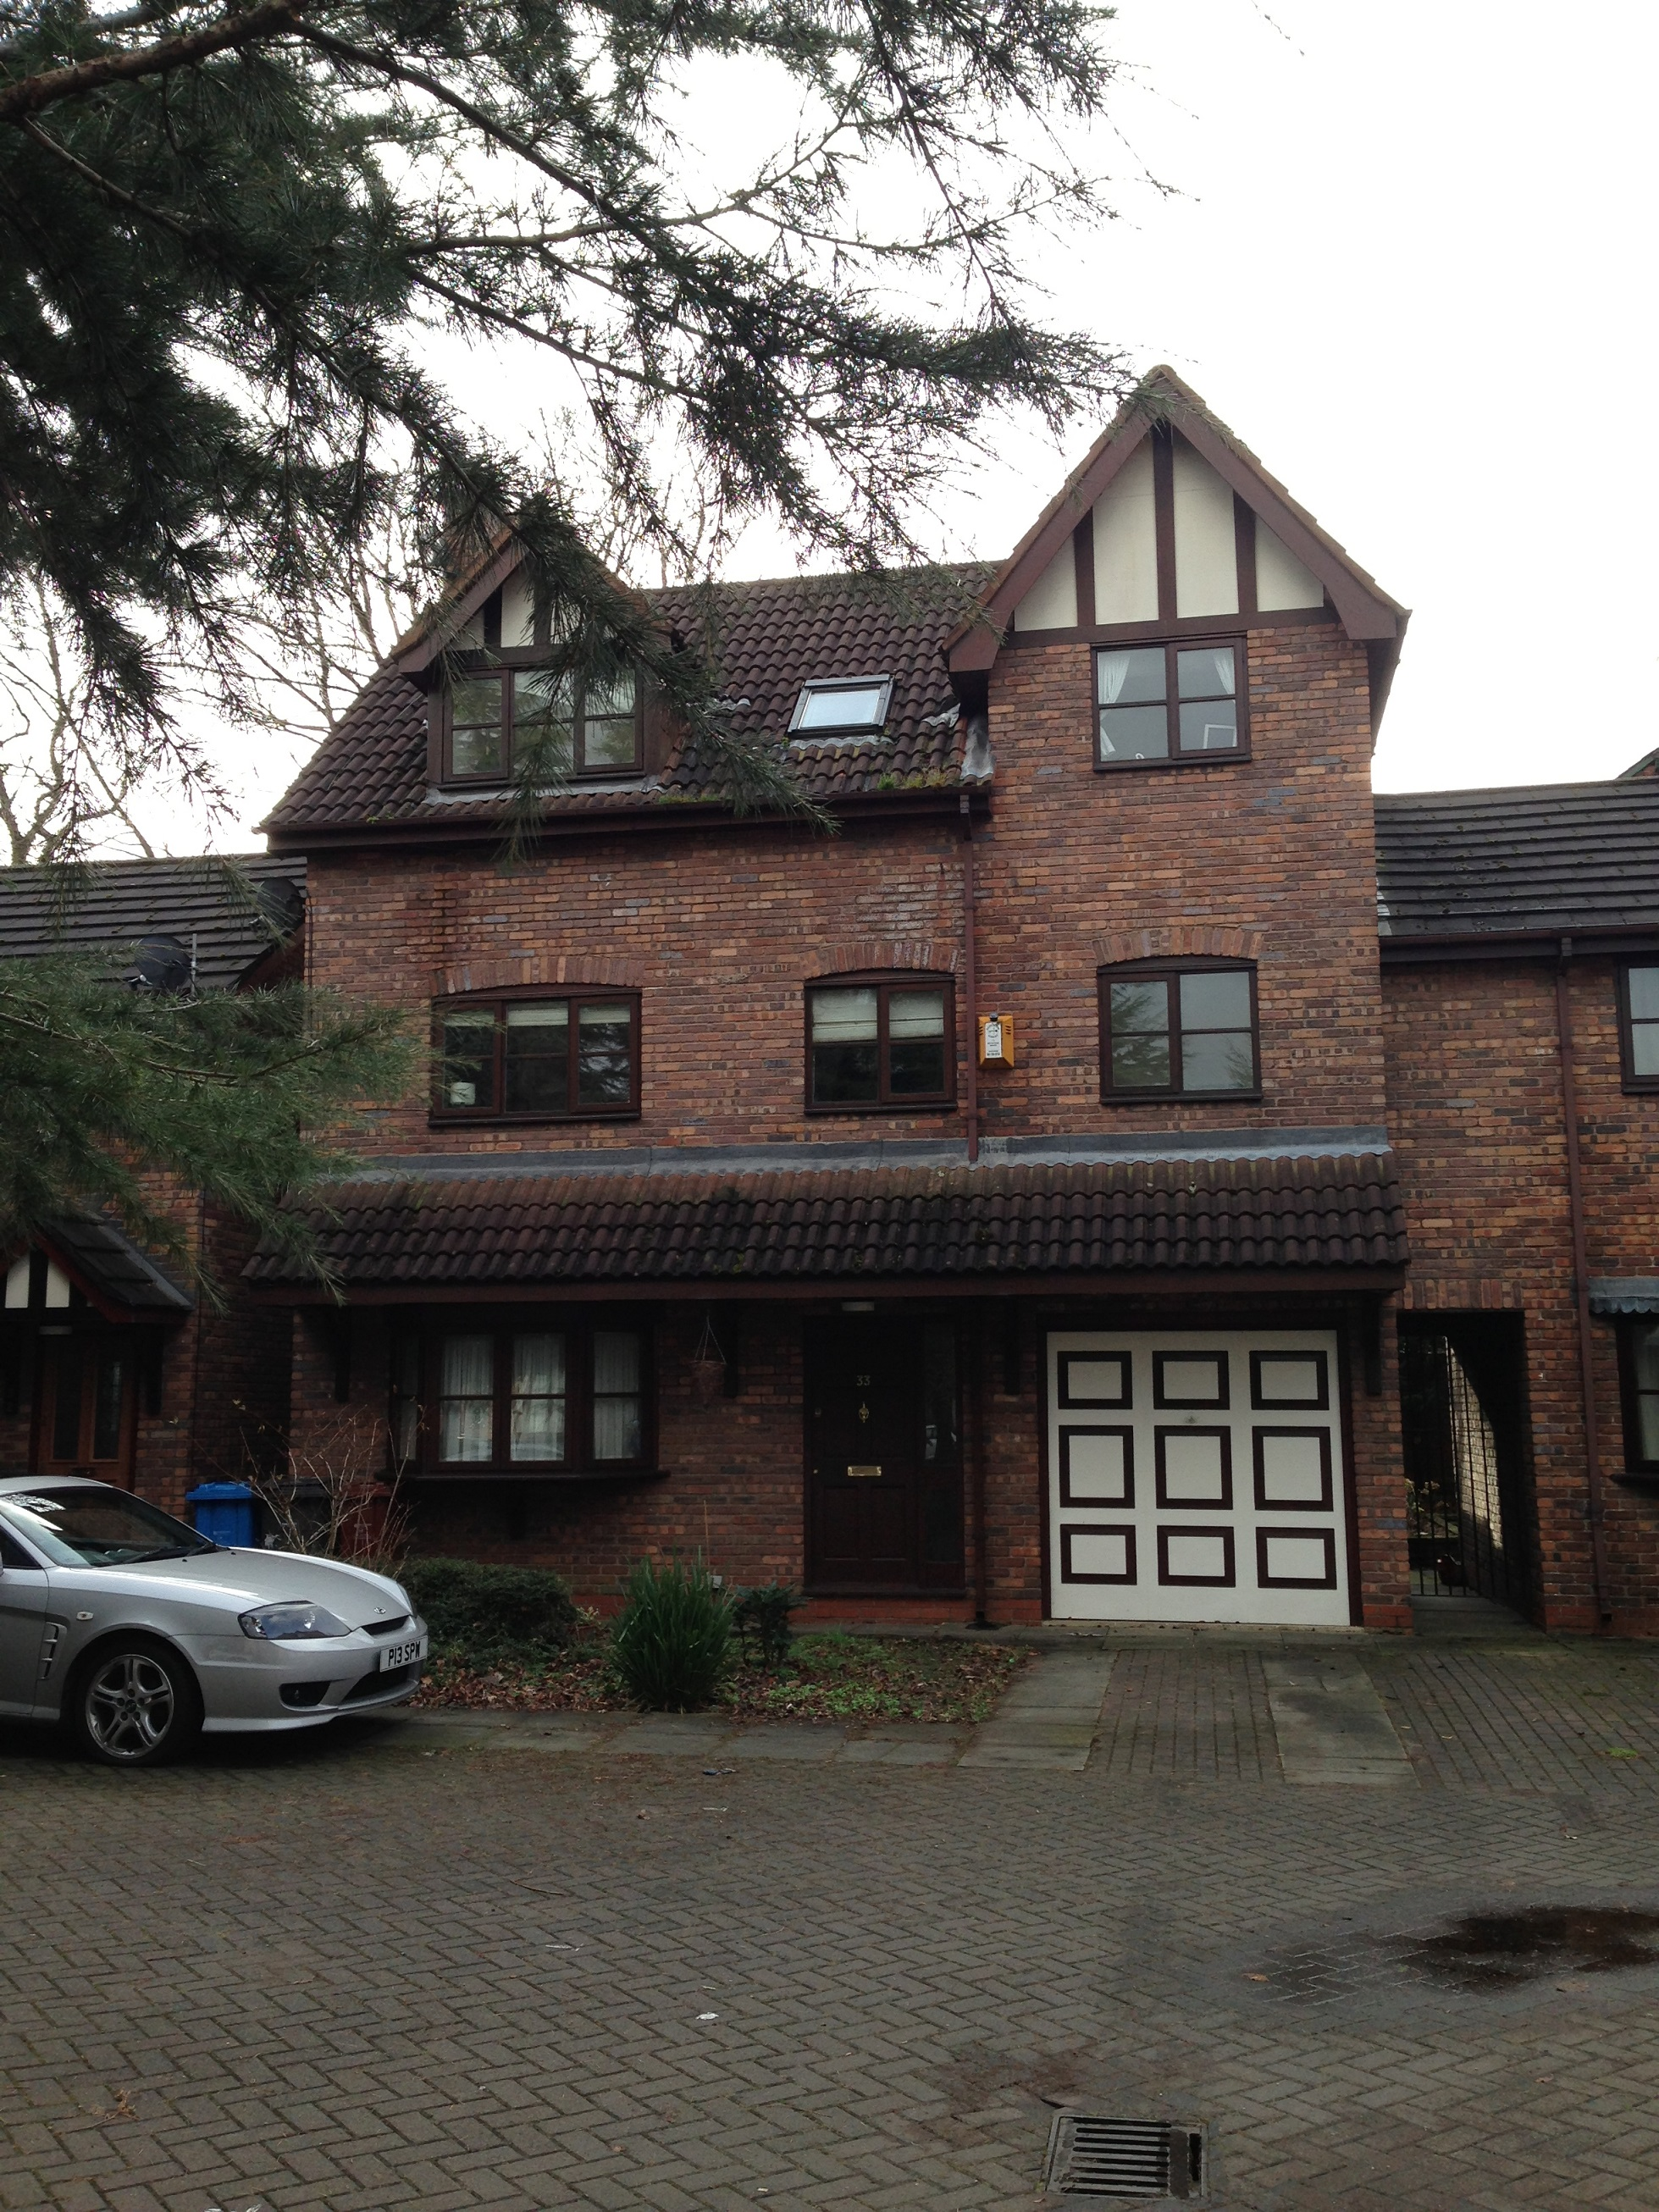 3 Bedroom Houses For Rent Landlord